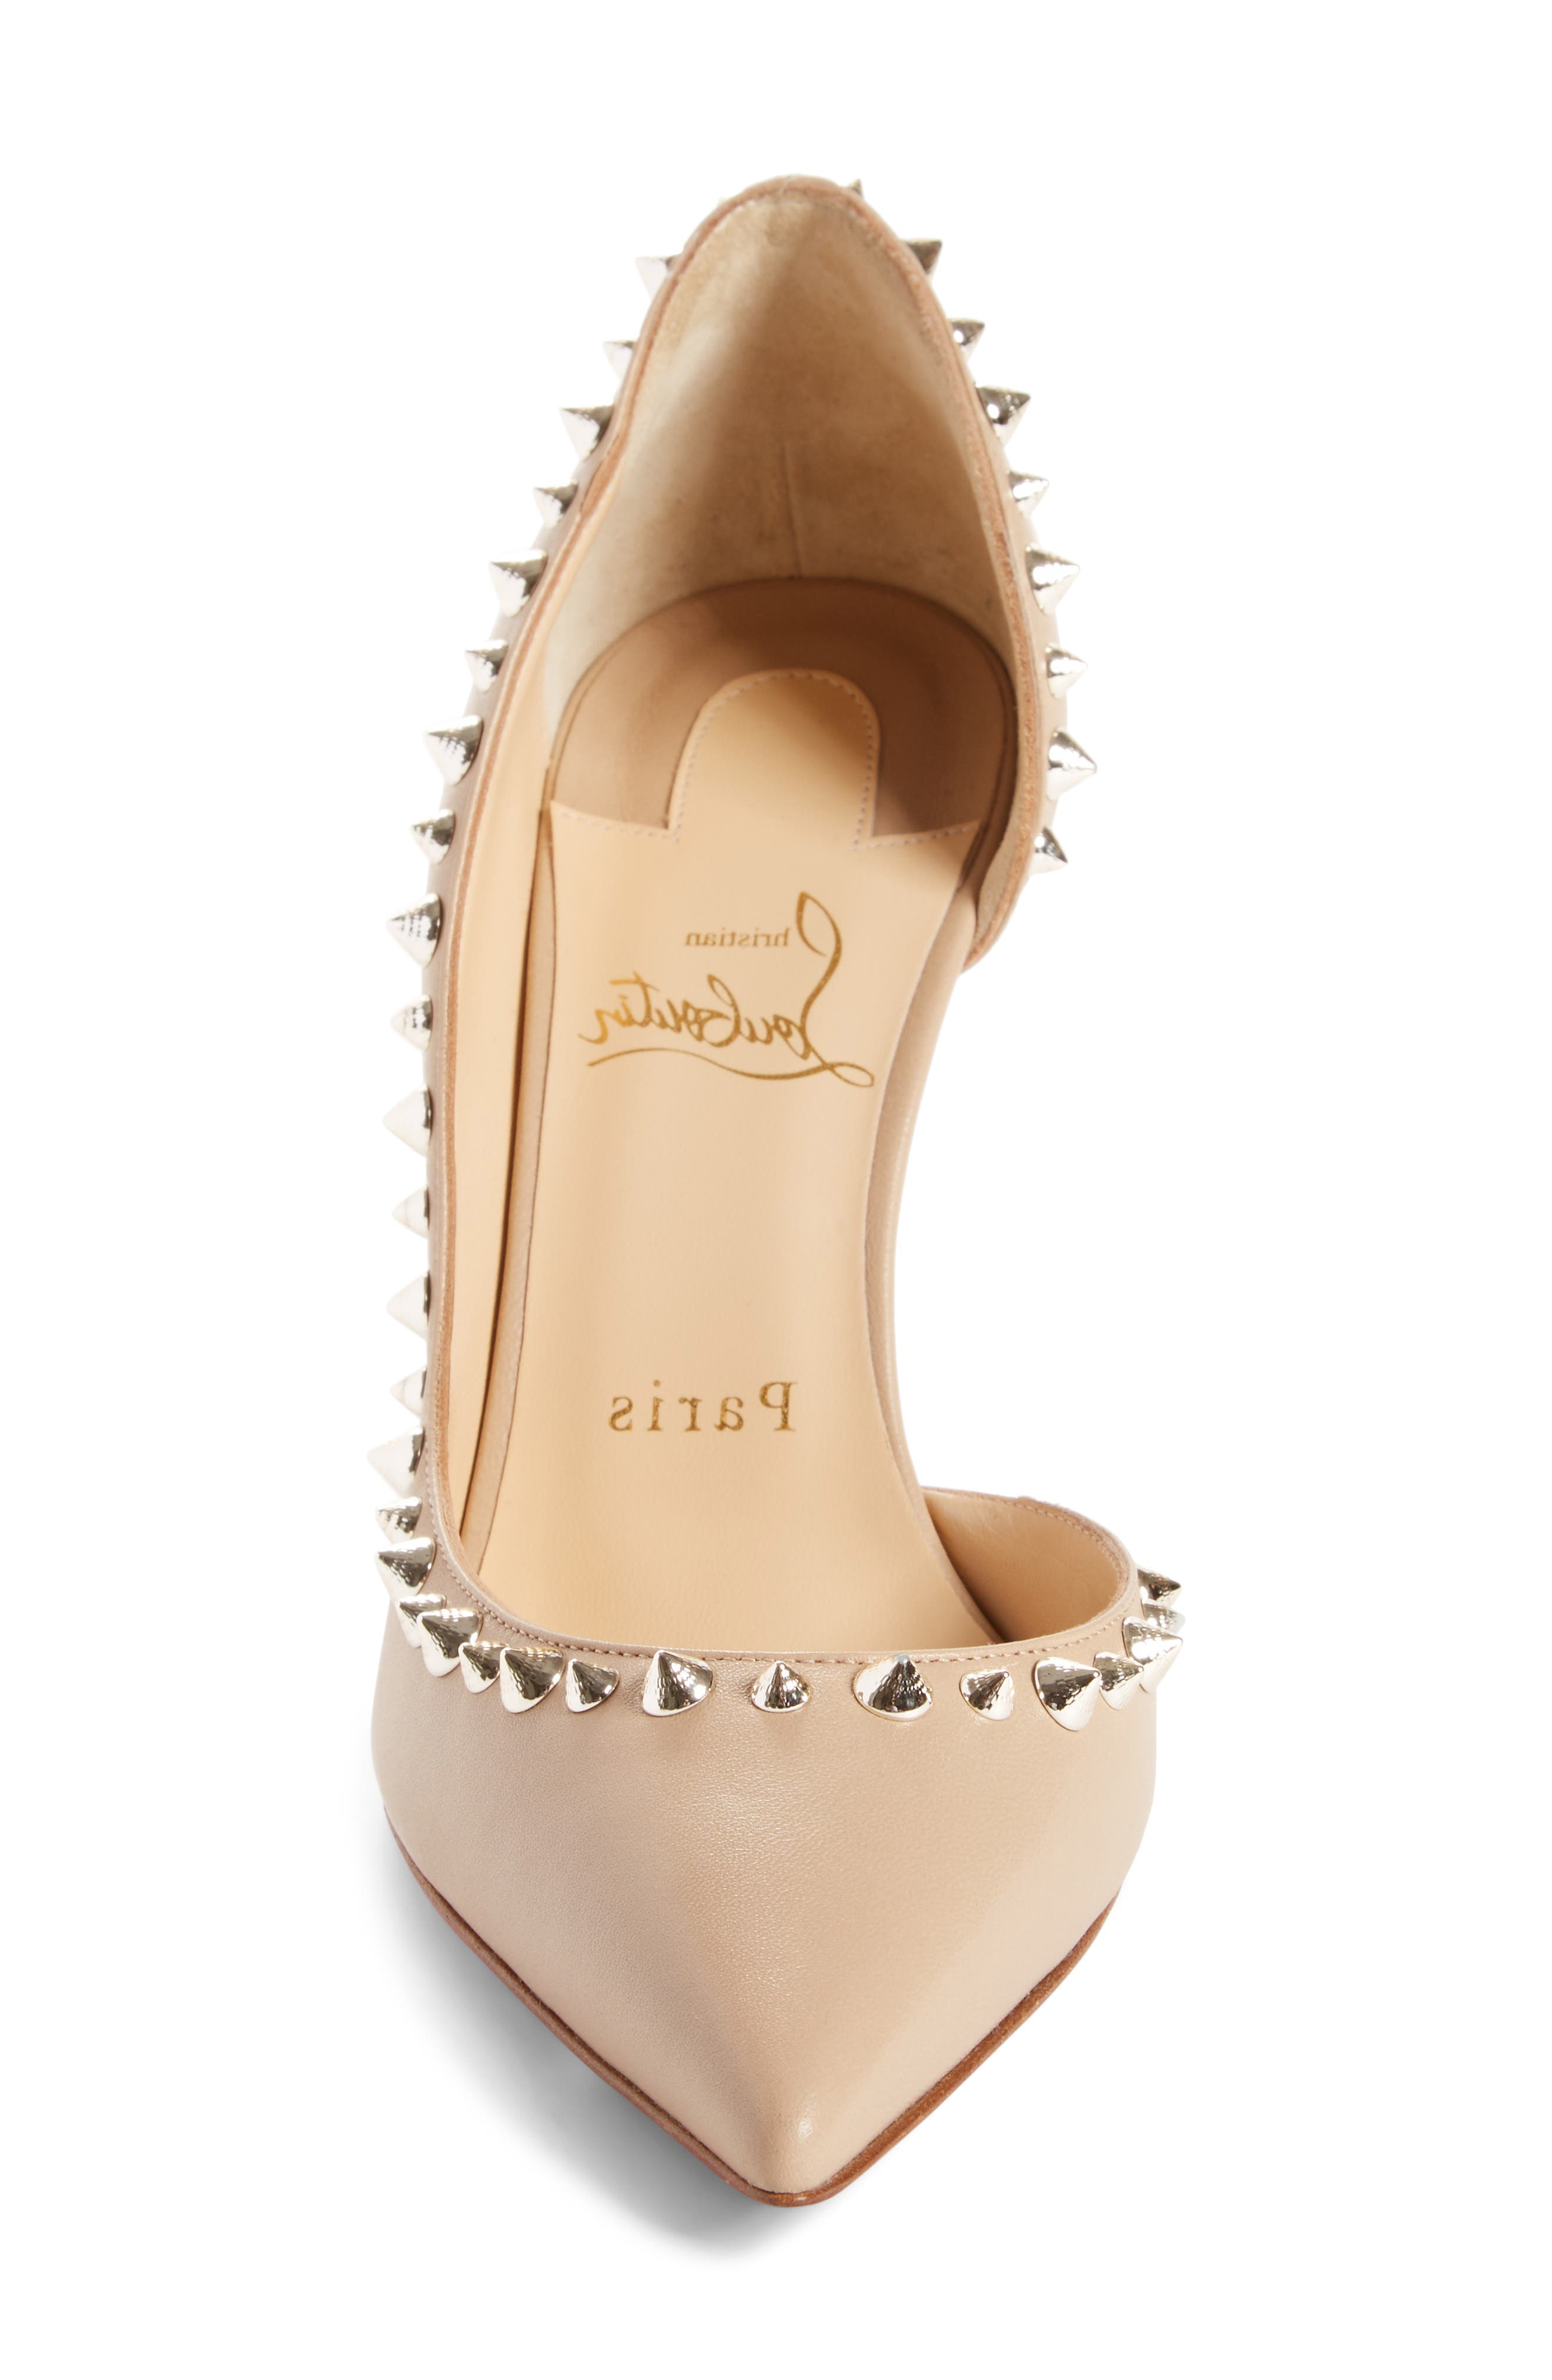 Irishell Studded Half d'Orsay Pump,                             Alternate thumbnail 4, color,                             NUDE/ WHITE GOLD